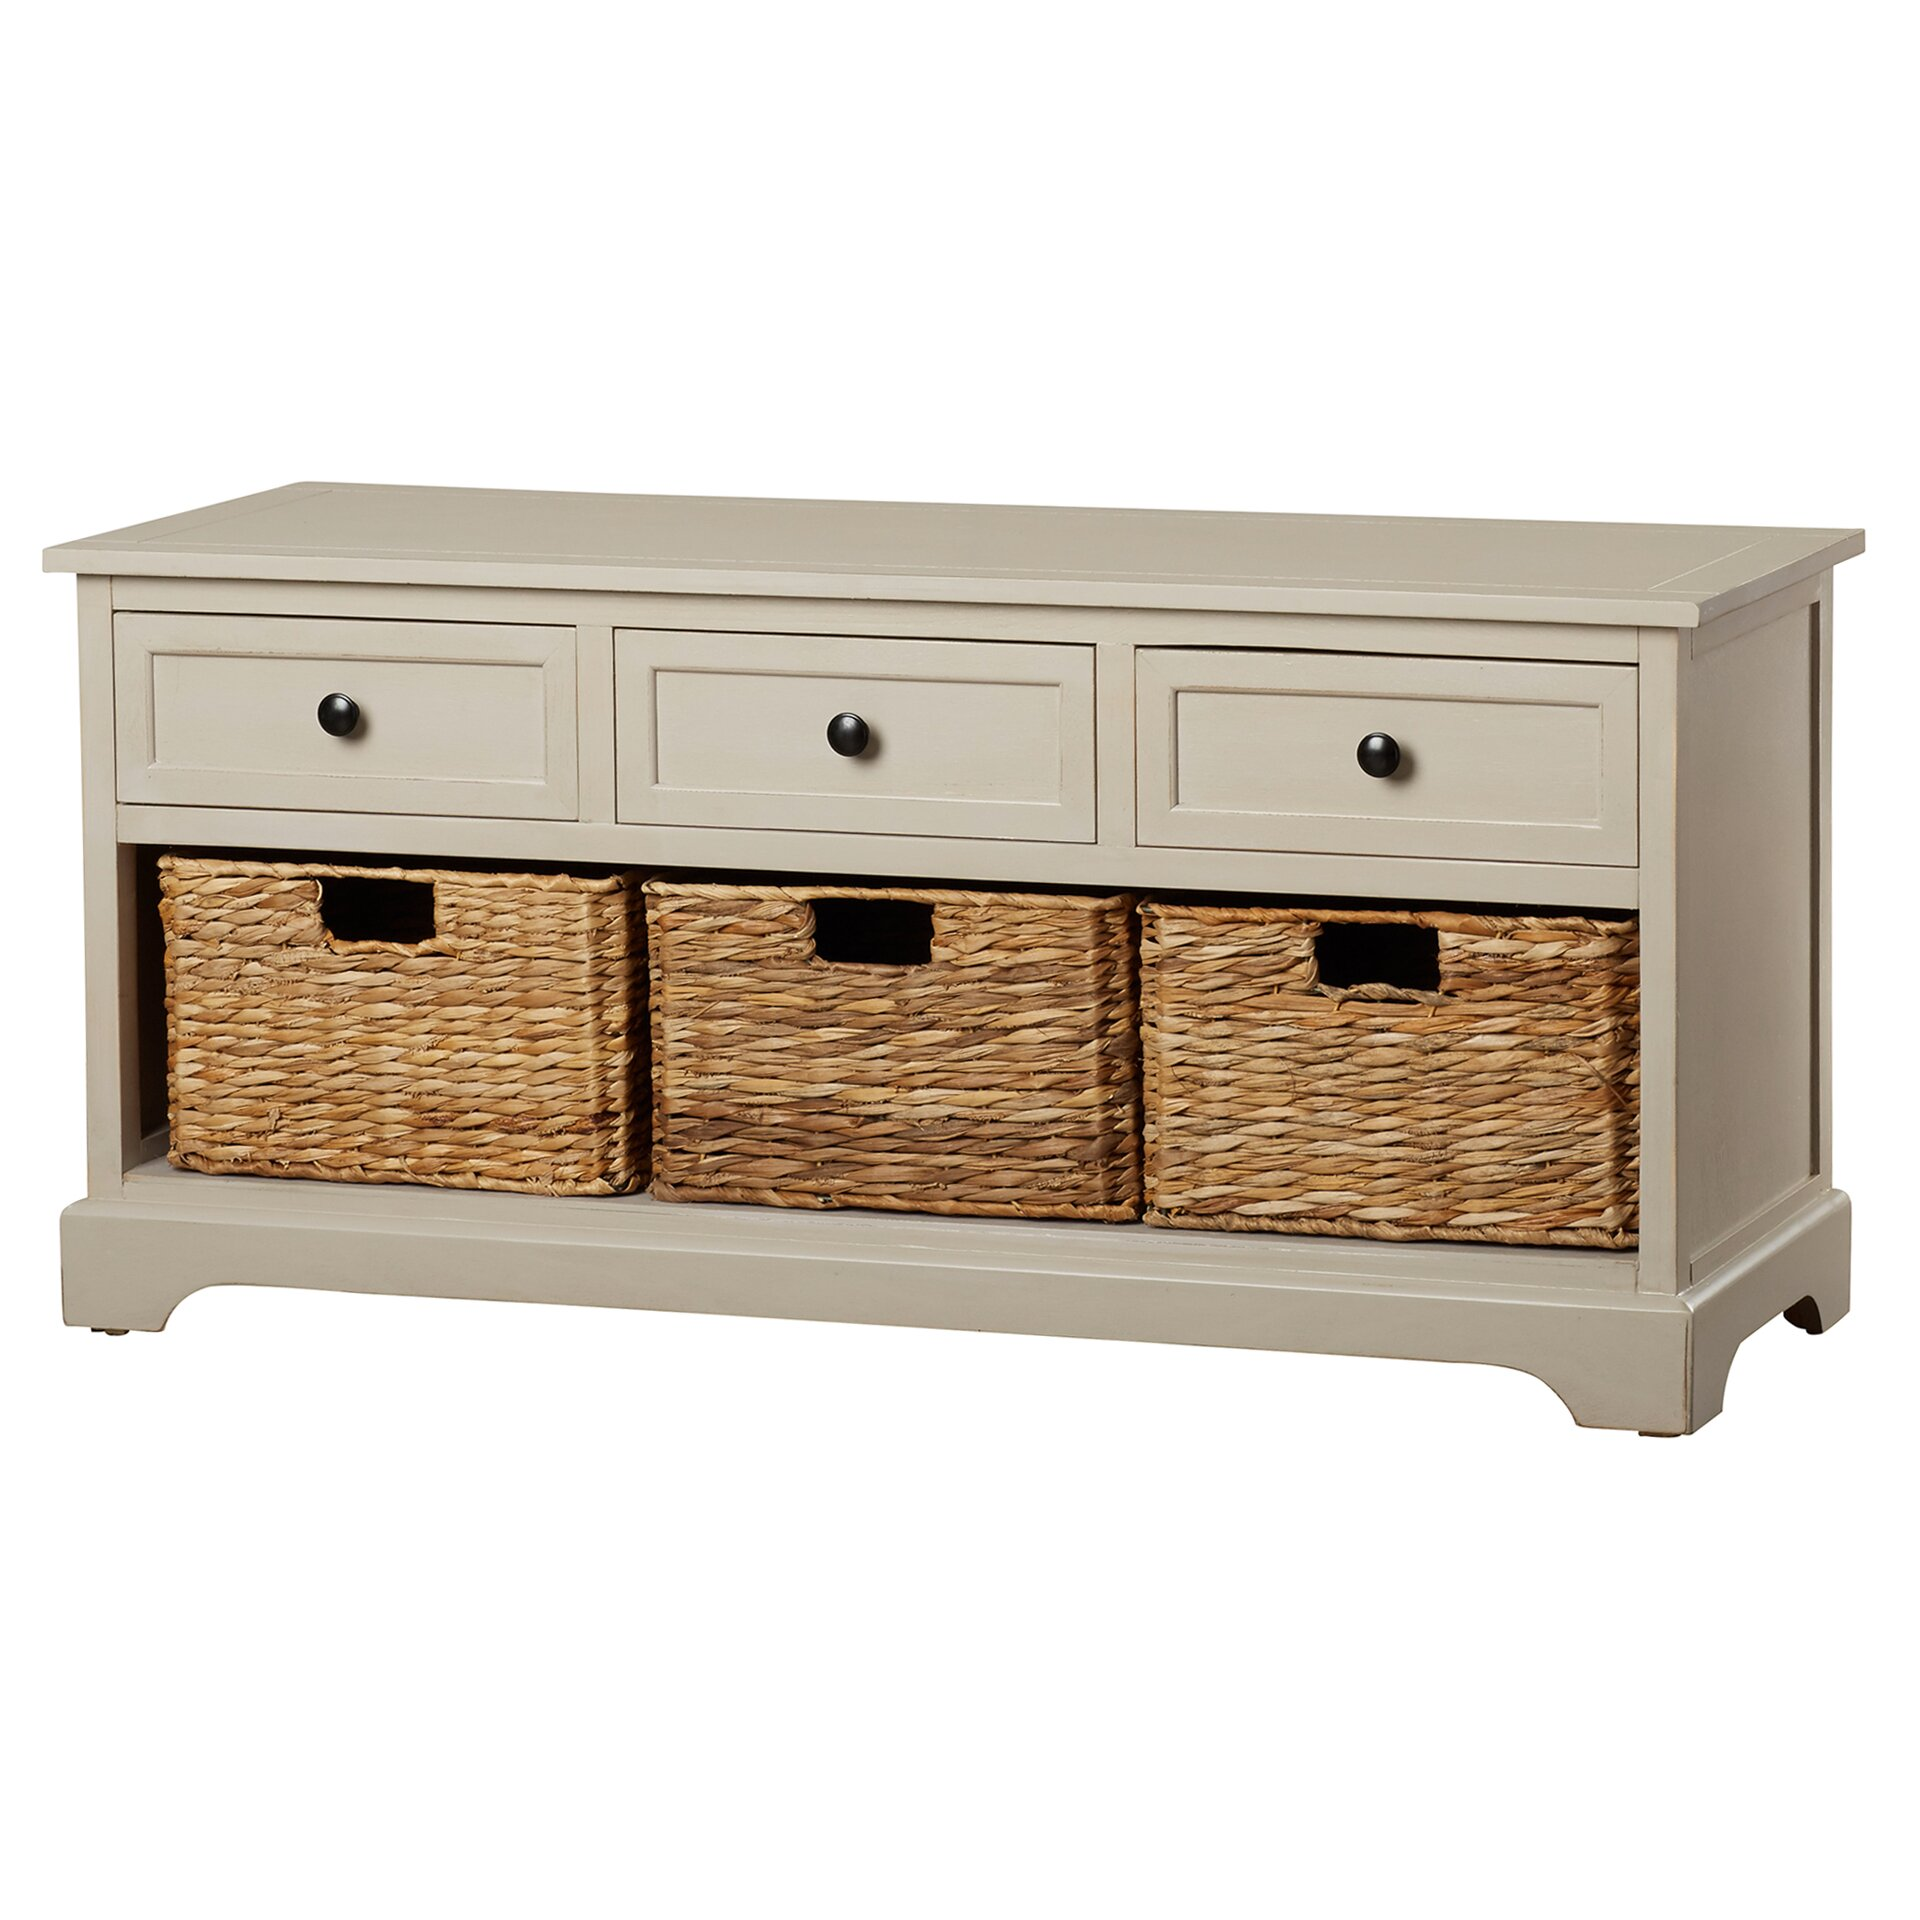 Beachcrest home mckinley 3 drawer storage entryway bench reviews wayfair Bench with shelf